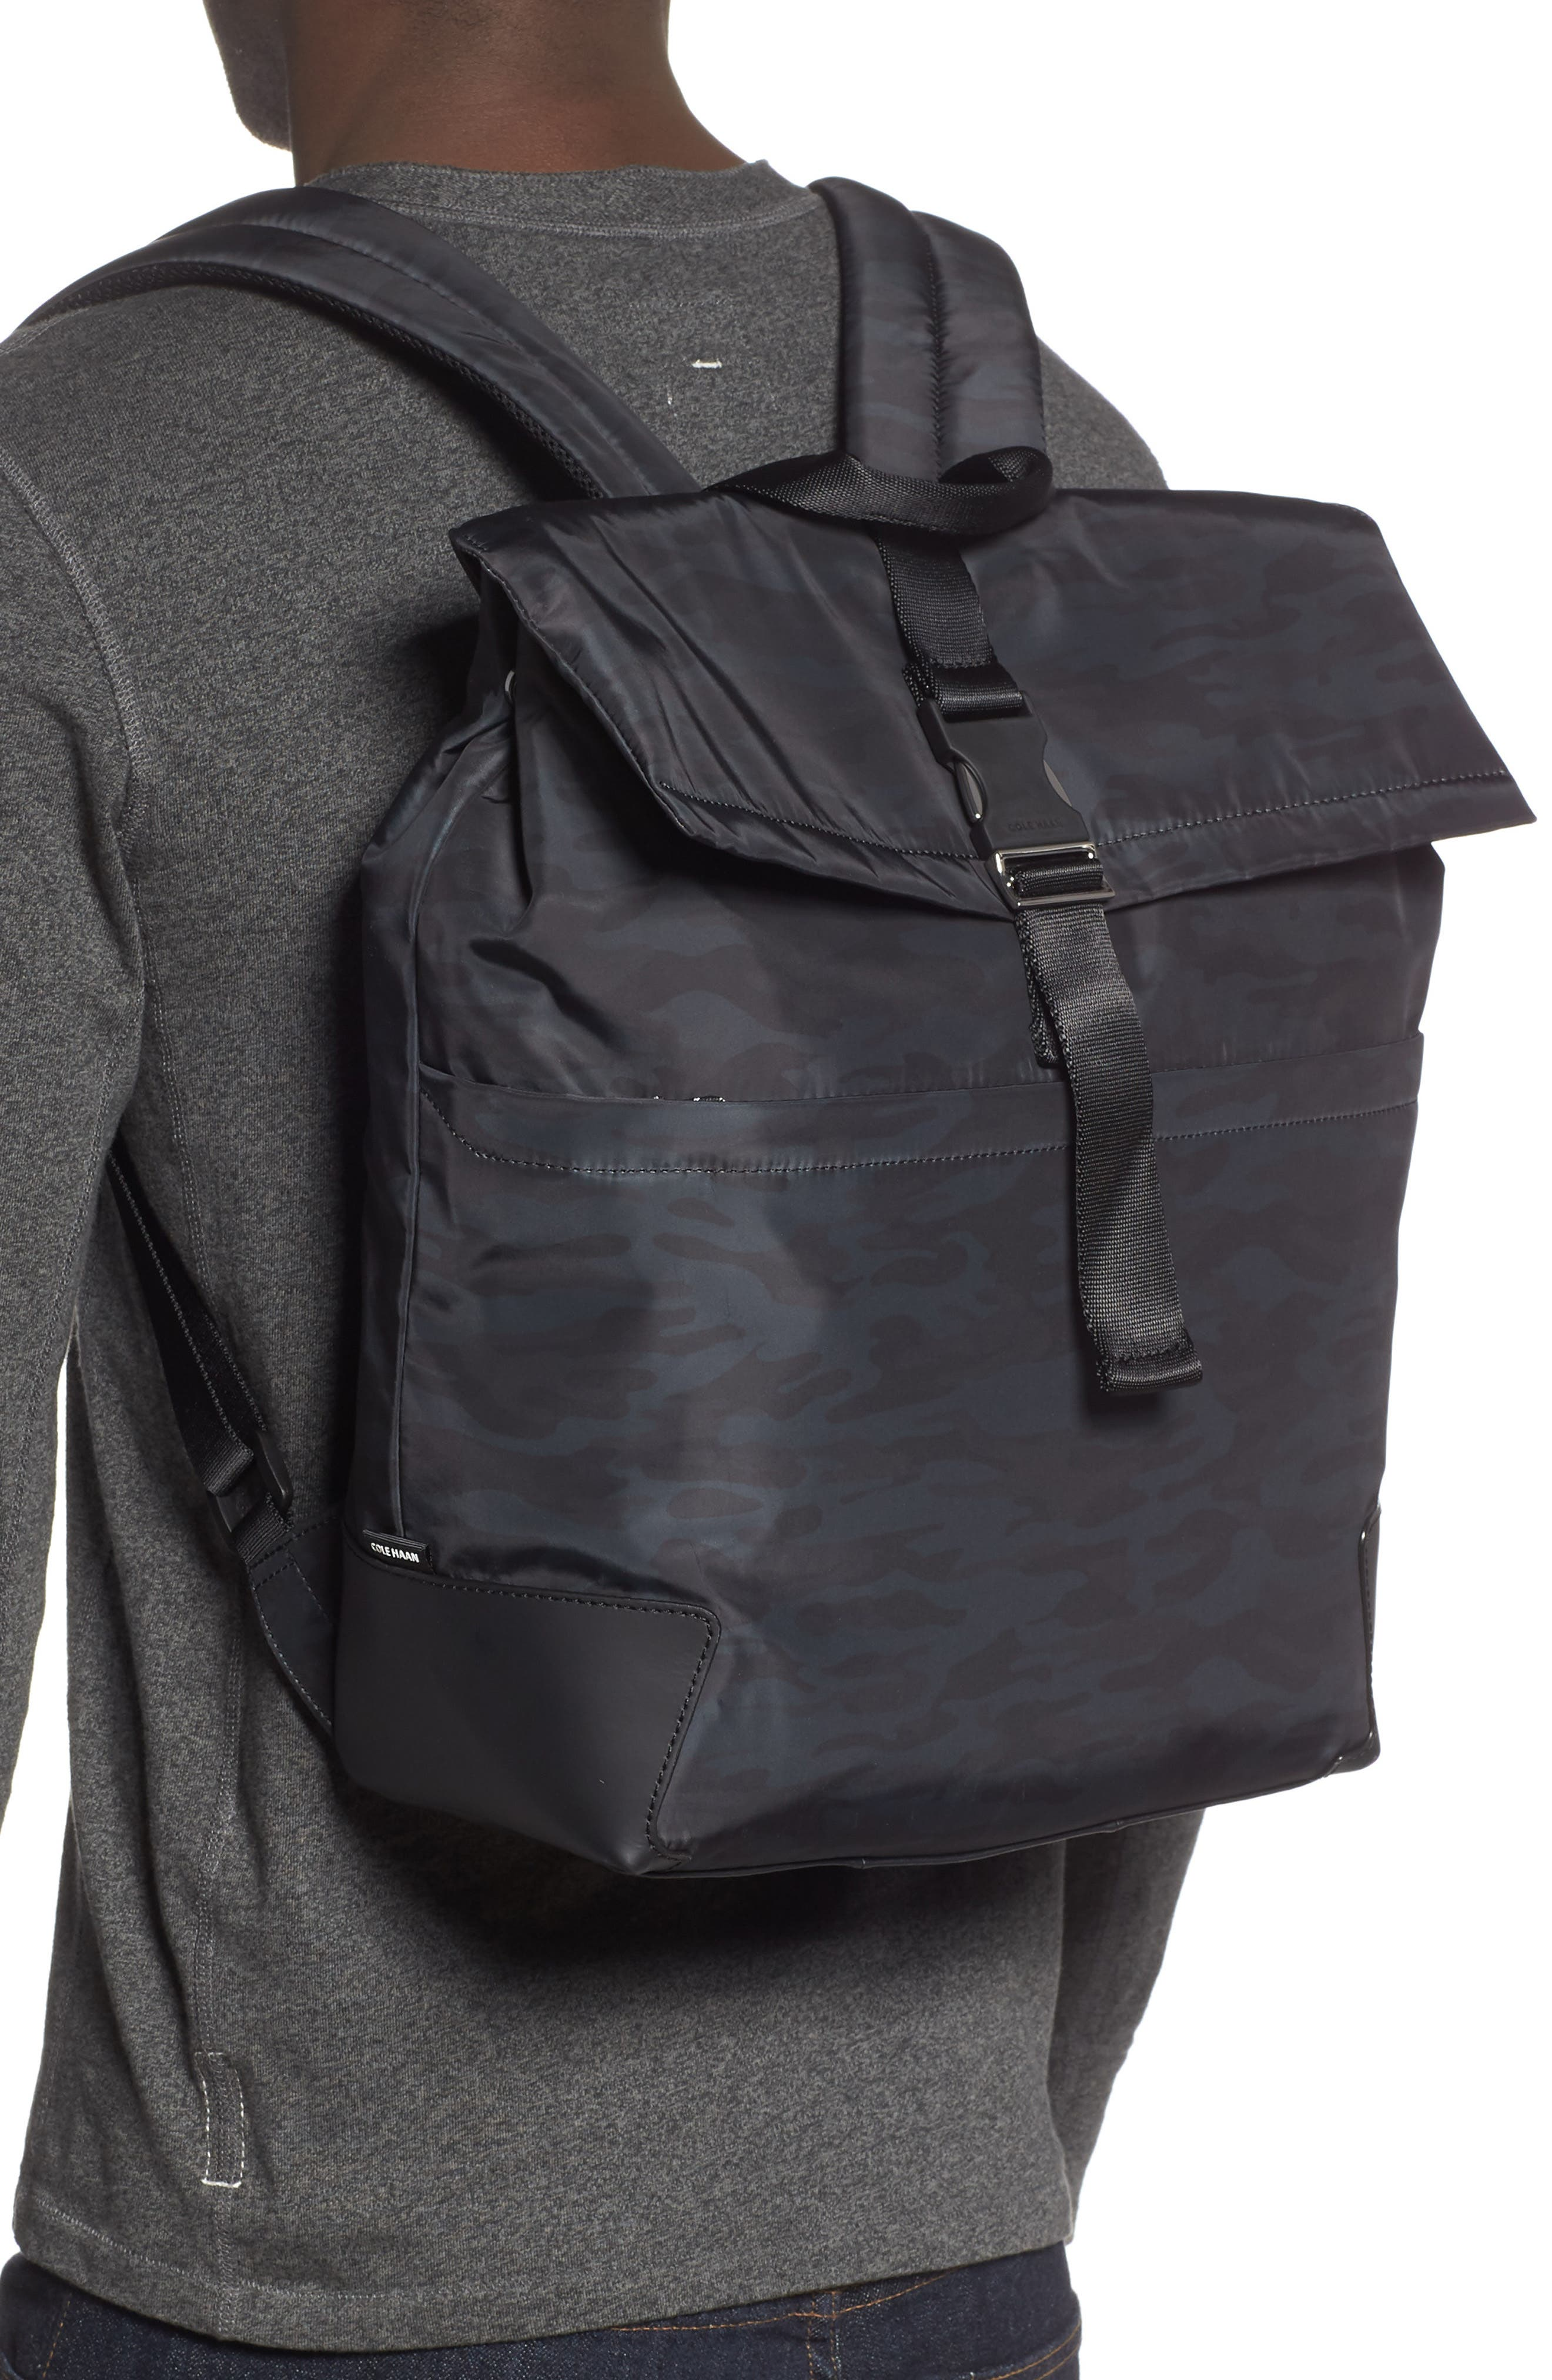 COLE HAAN, Sawyer Laptop Backpack, Alternate thumbnail 2, color, CAMO